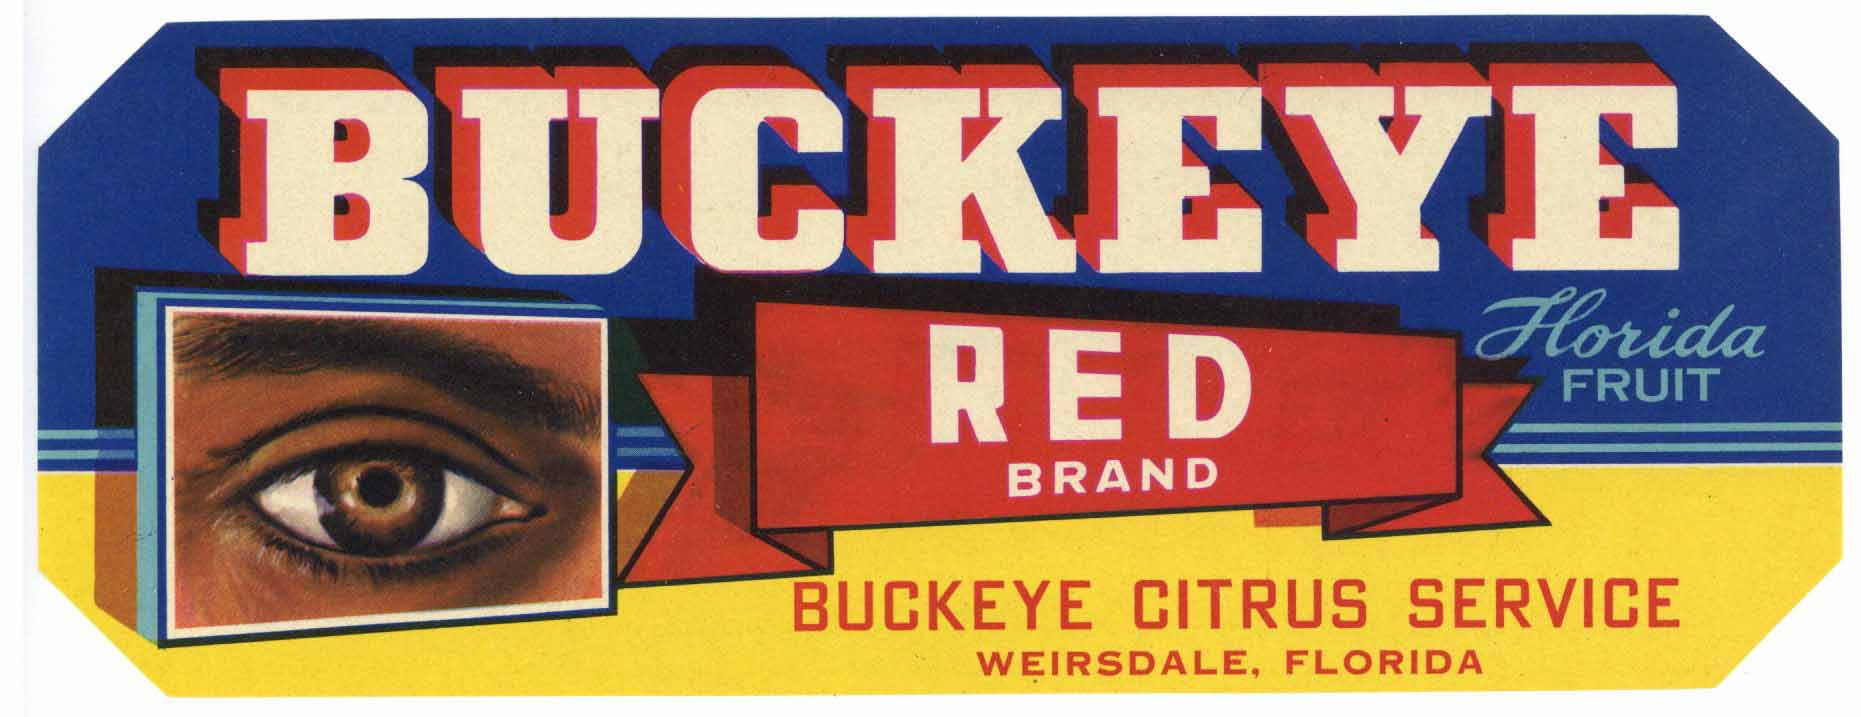 Buckeye Brand Vintage Weirsdale Florida Citrus Crate Label, red